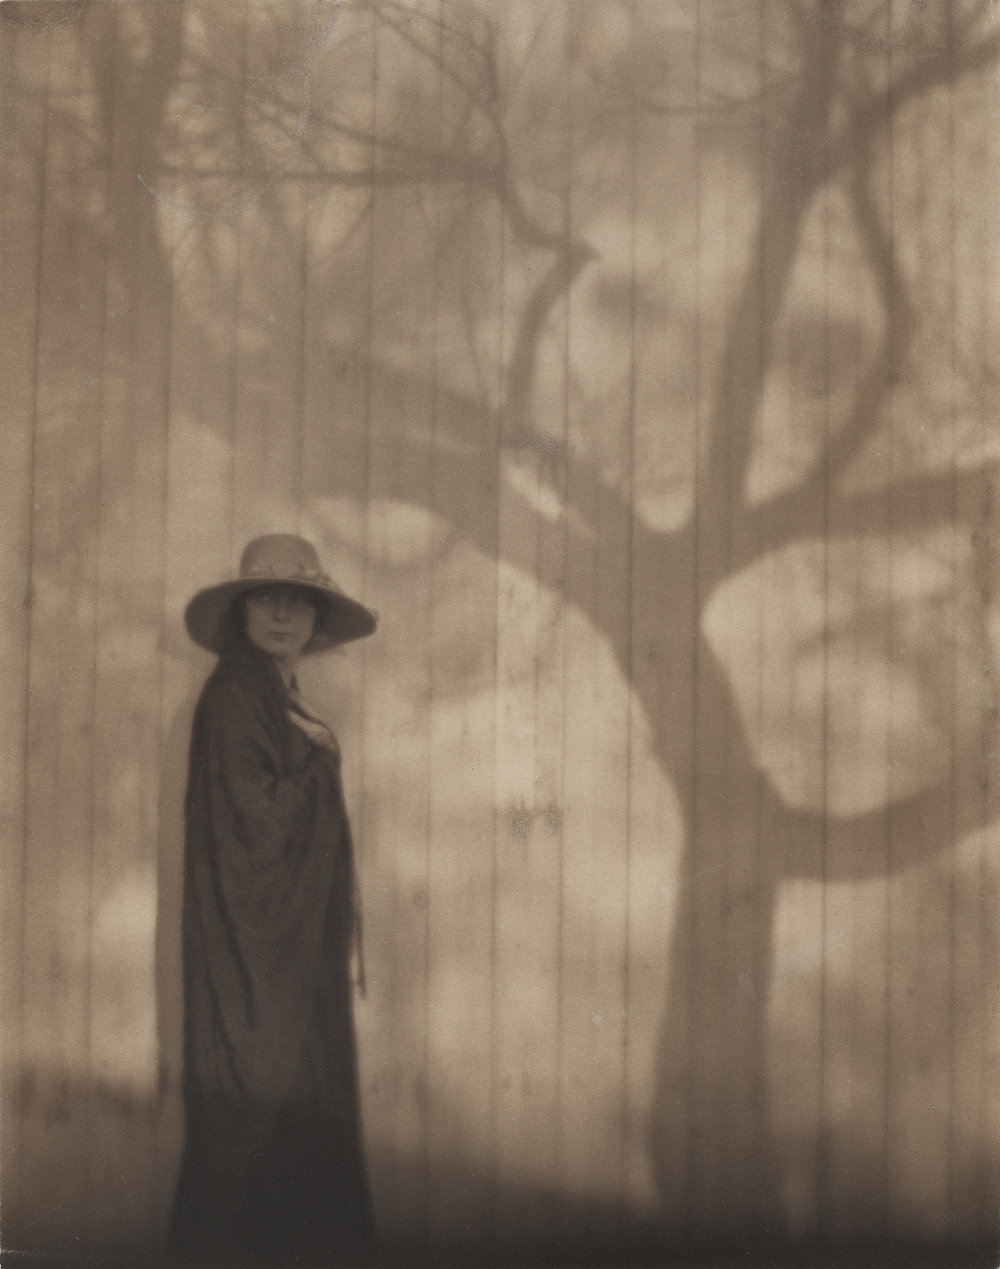 Prologue to a Sad Spring, The Lane Collection, Photograph © Museum of Fine Arts, Boston